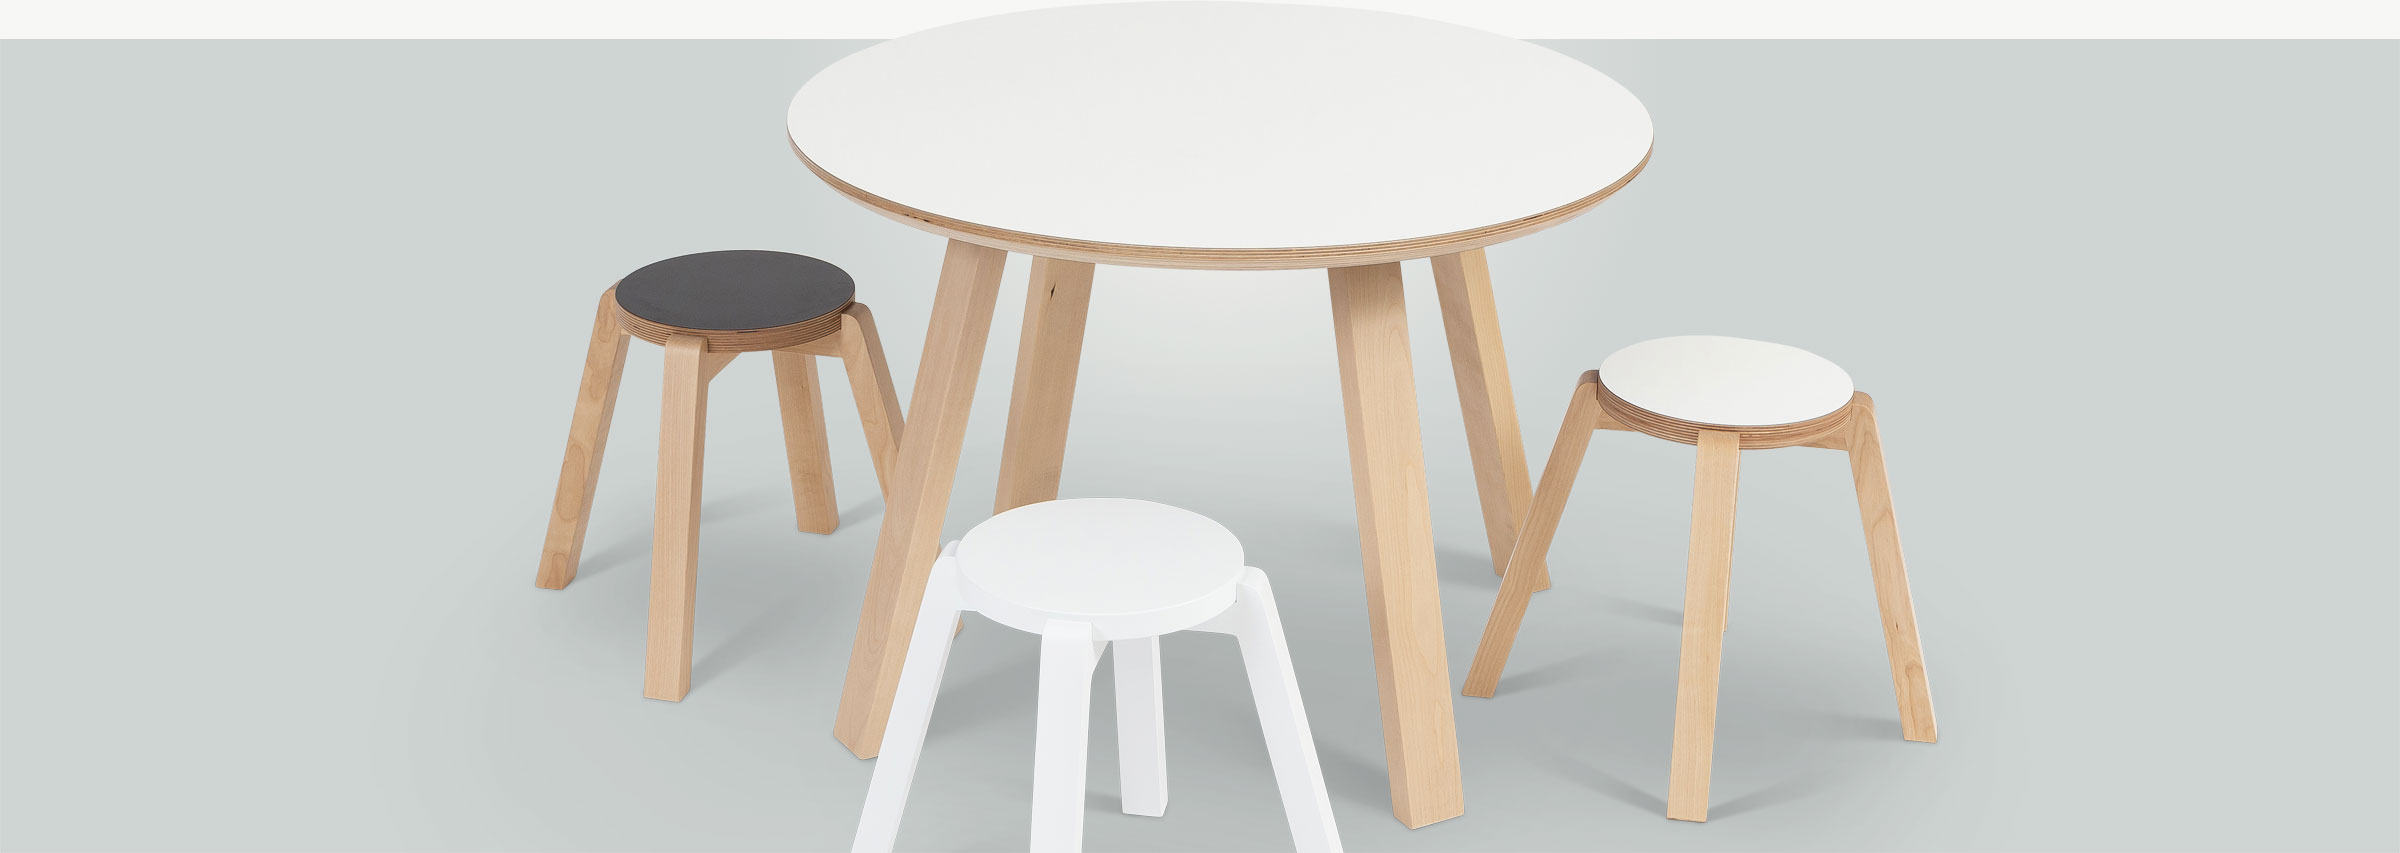 Onni Table and Stools 4 pcs